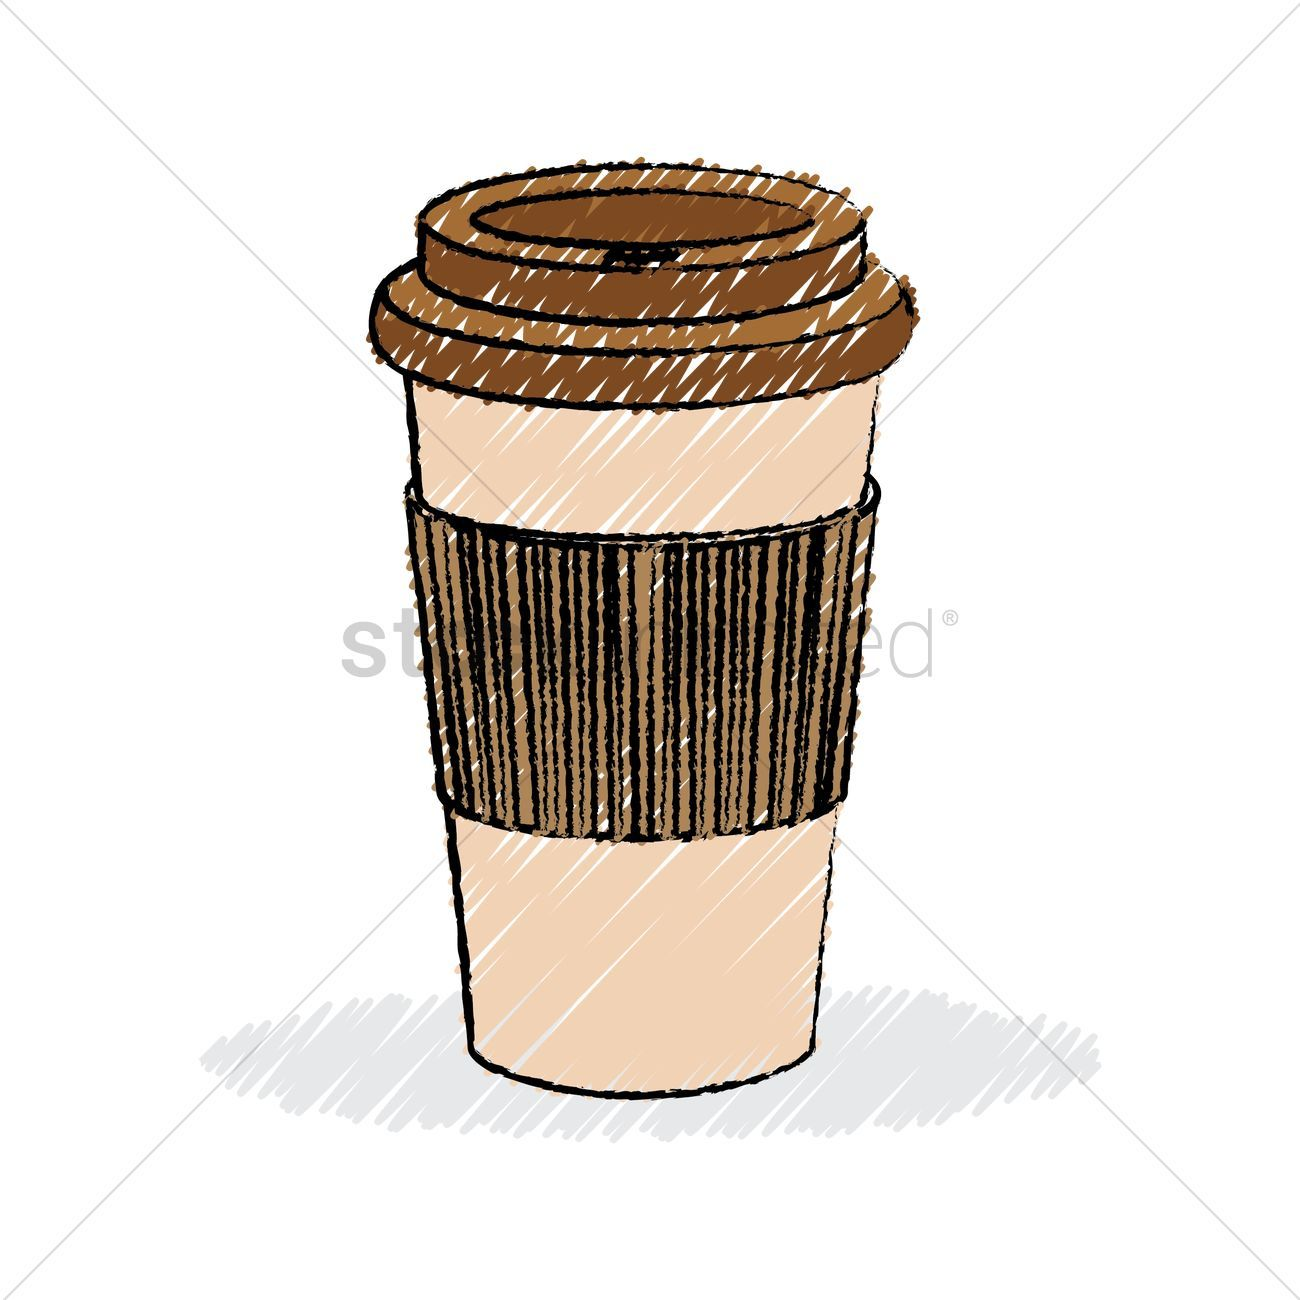 Takeaway coffee clipart image library Takeaway coffee clipart 6 » Clipart Portal image library